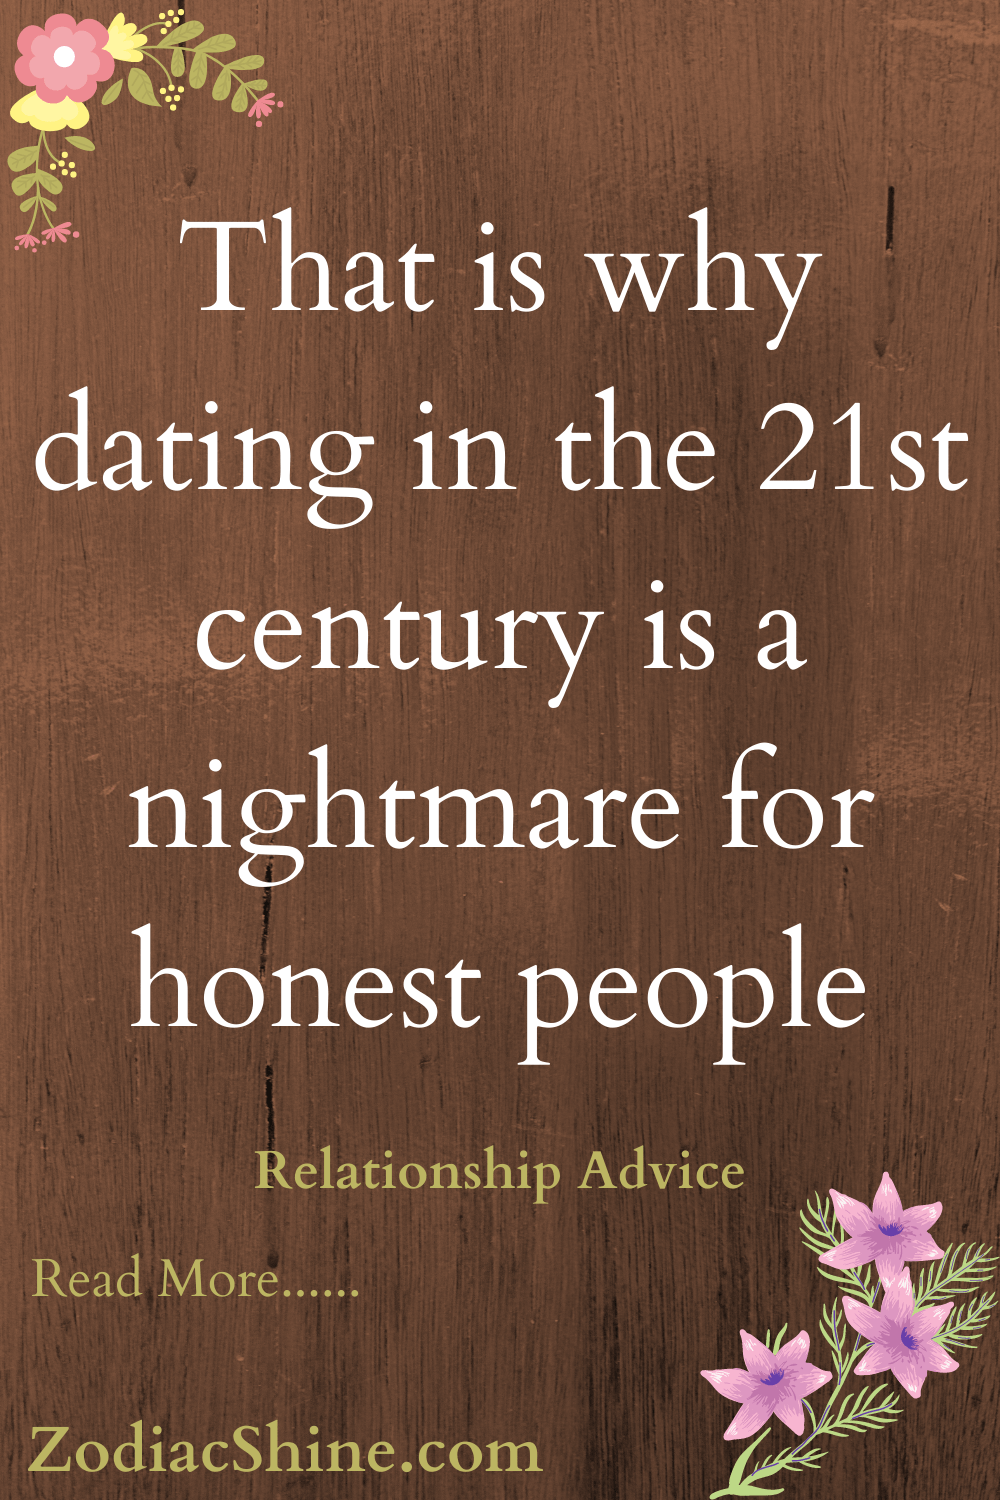 That is why dating in the 21st century is a nightmare for honest people